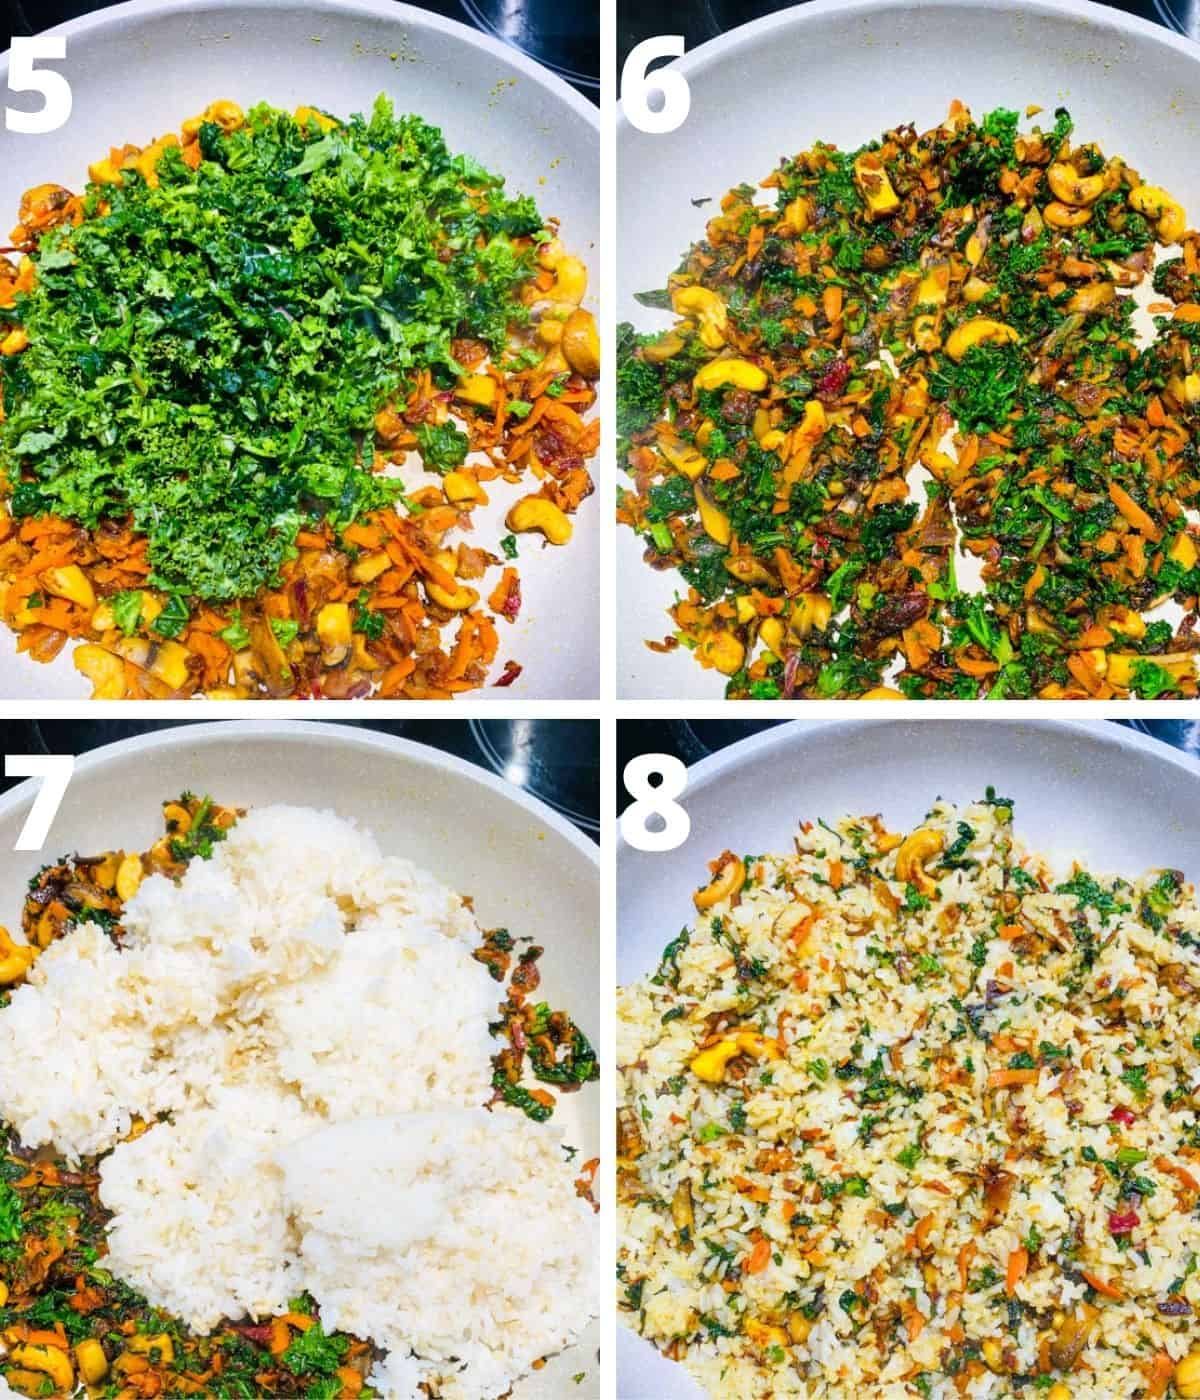 Picture collage of Kale rice step by step images. This gallery shows from adding kale to finishing kale rice.